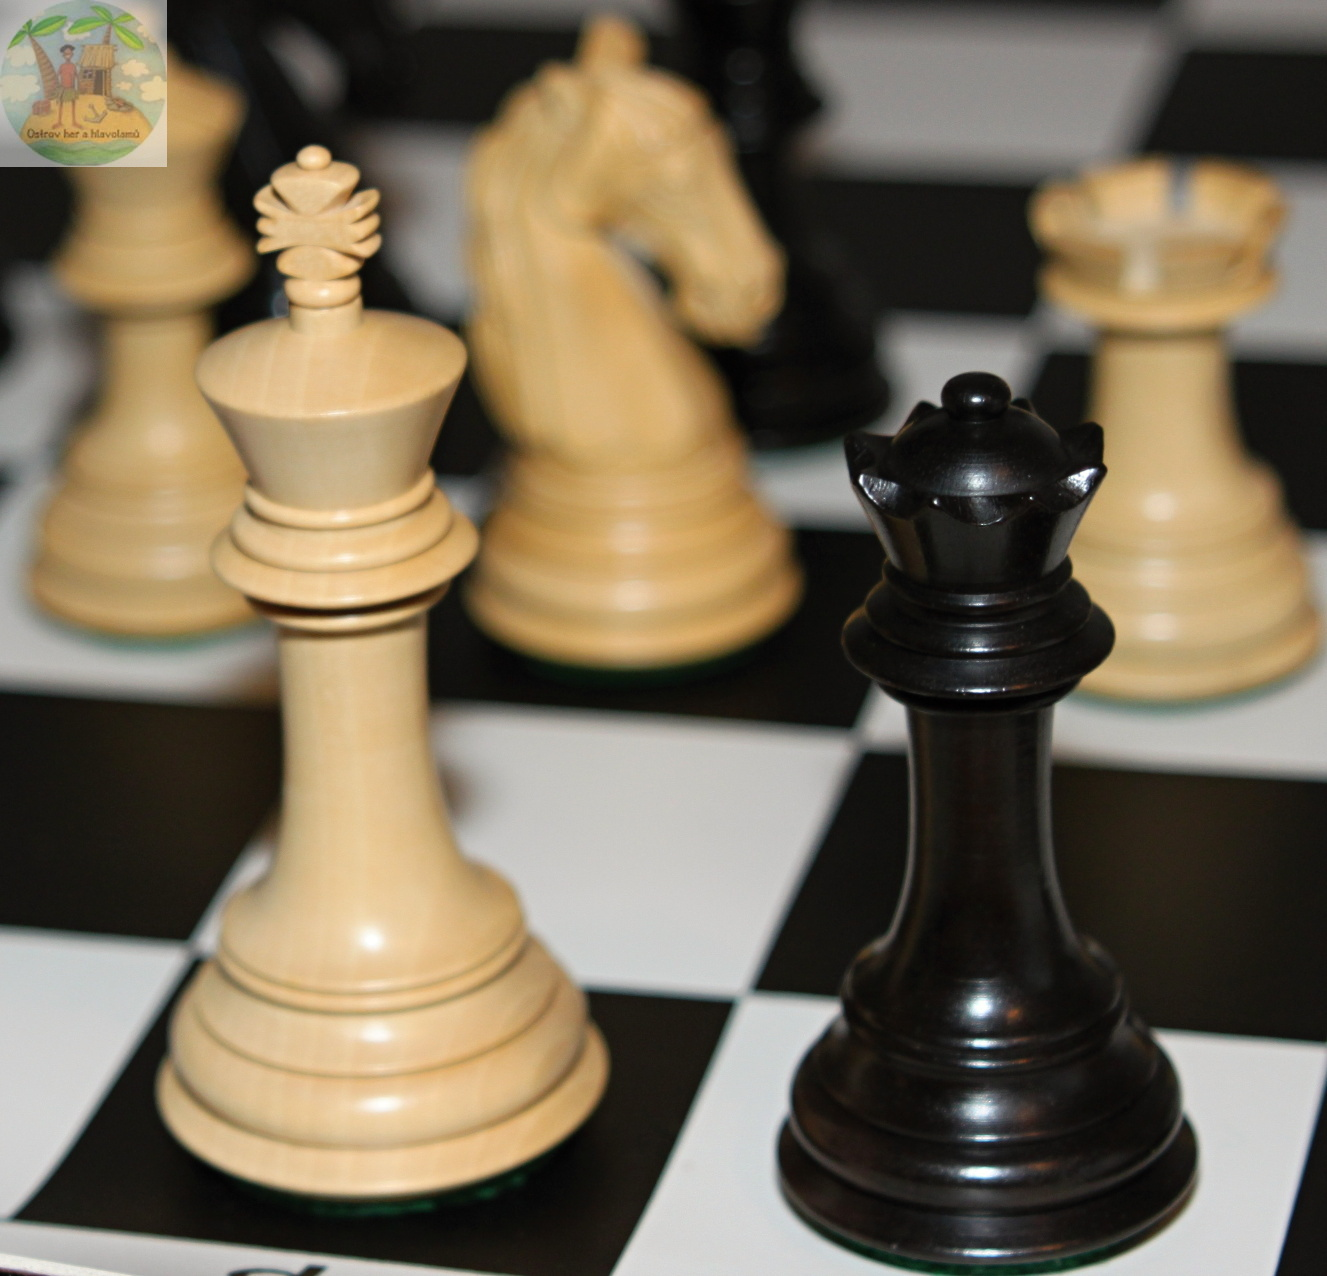 The New Columbian Staunton Series Chess Pieces